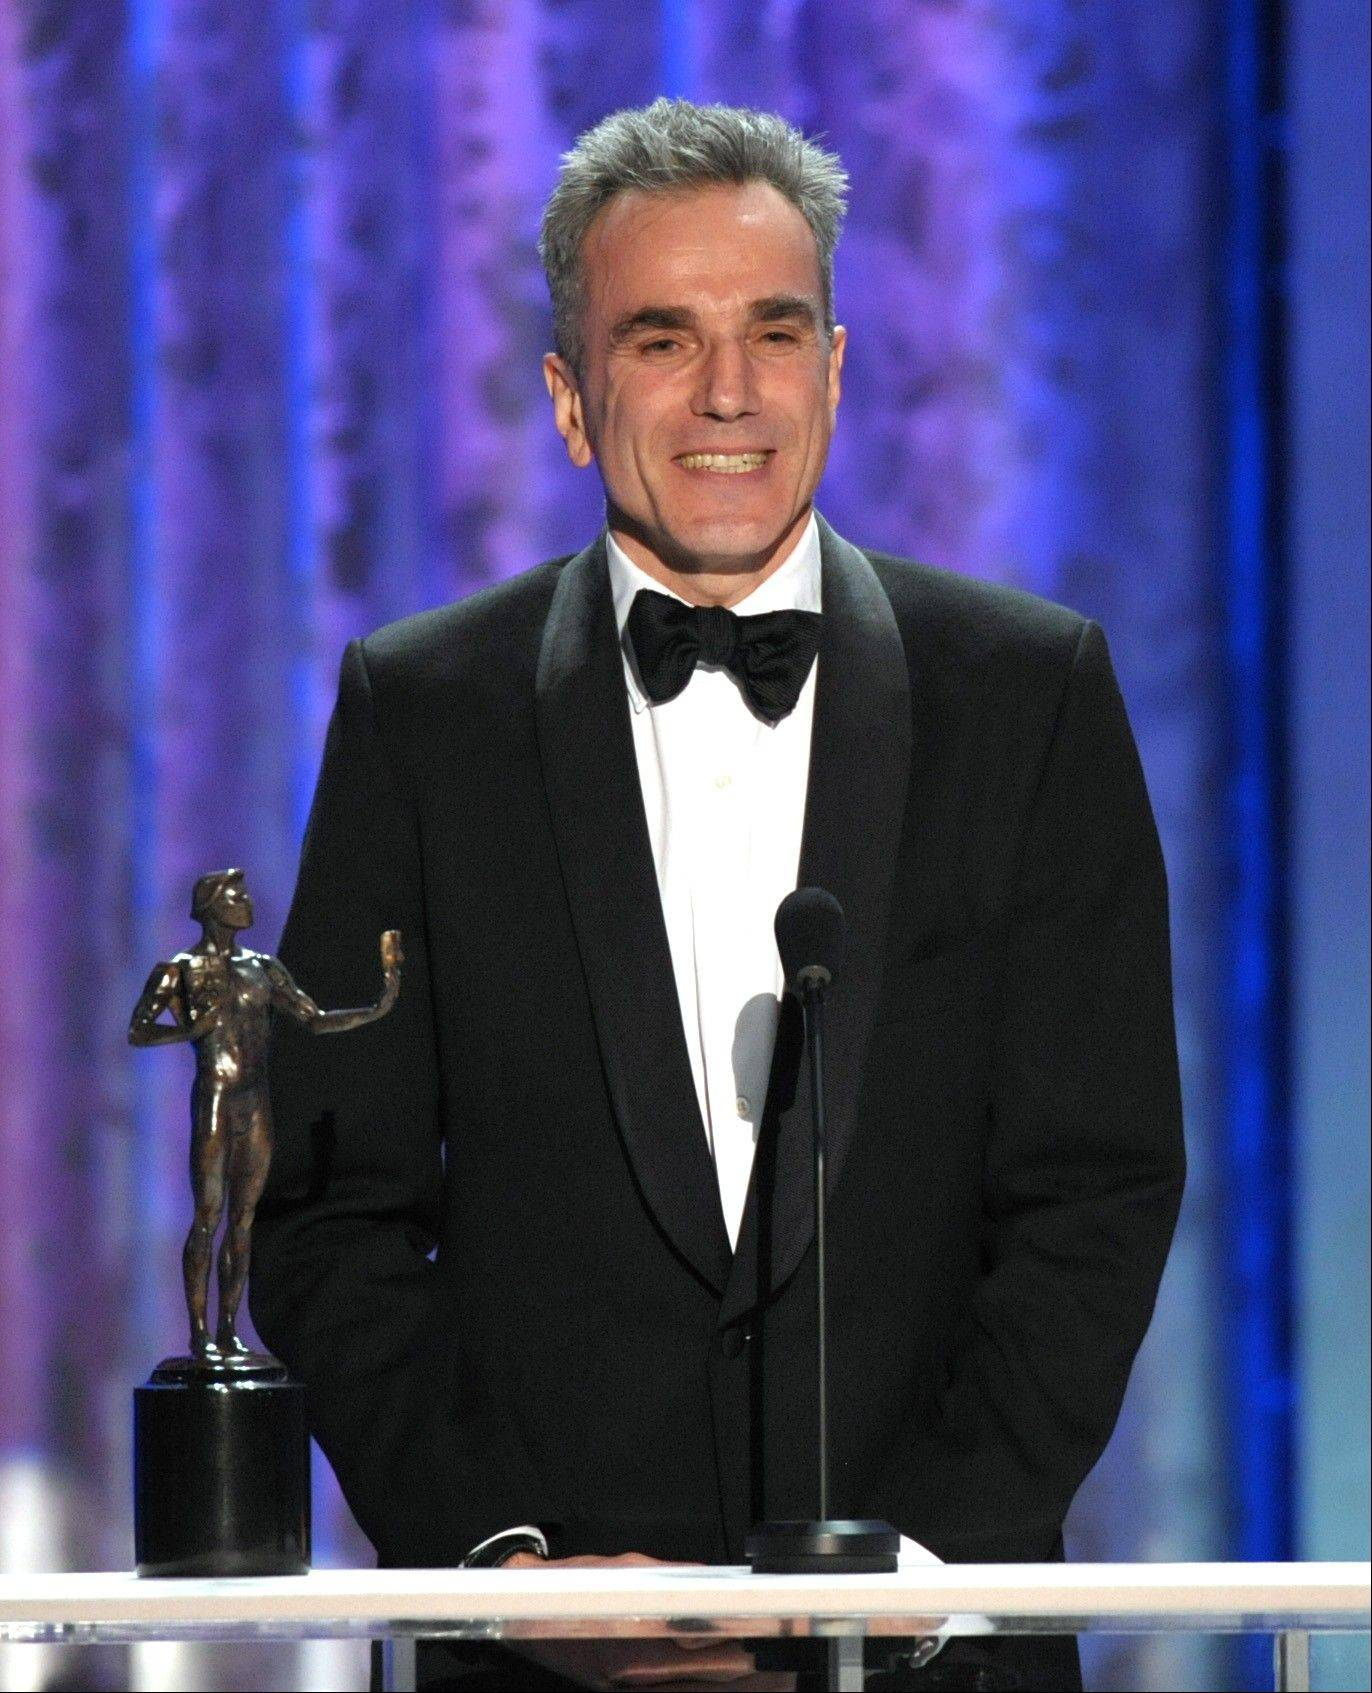 Daniel Day-Lewis accepts the awards for outstanding male actor in a leading role for �Lincoln� at the 19th Annual Screen Actors Guild Awards at the Shrine Auditorium in Los Angeles on Sunday Jan. 27, 2013.